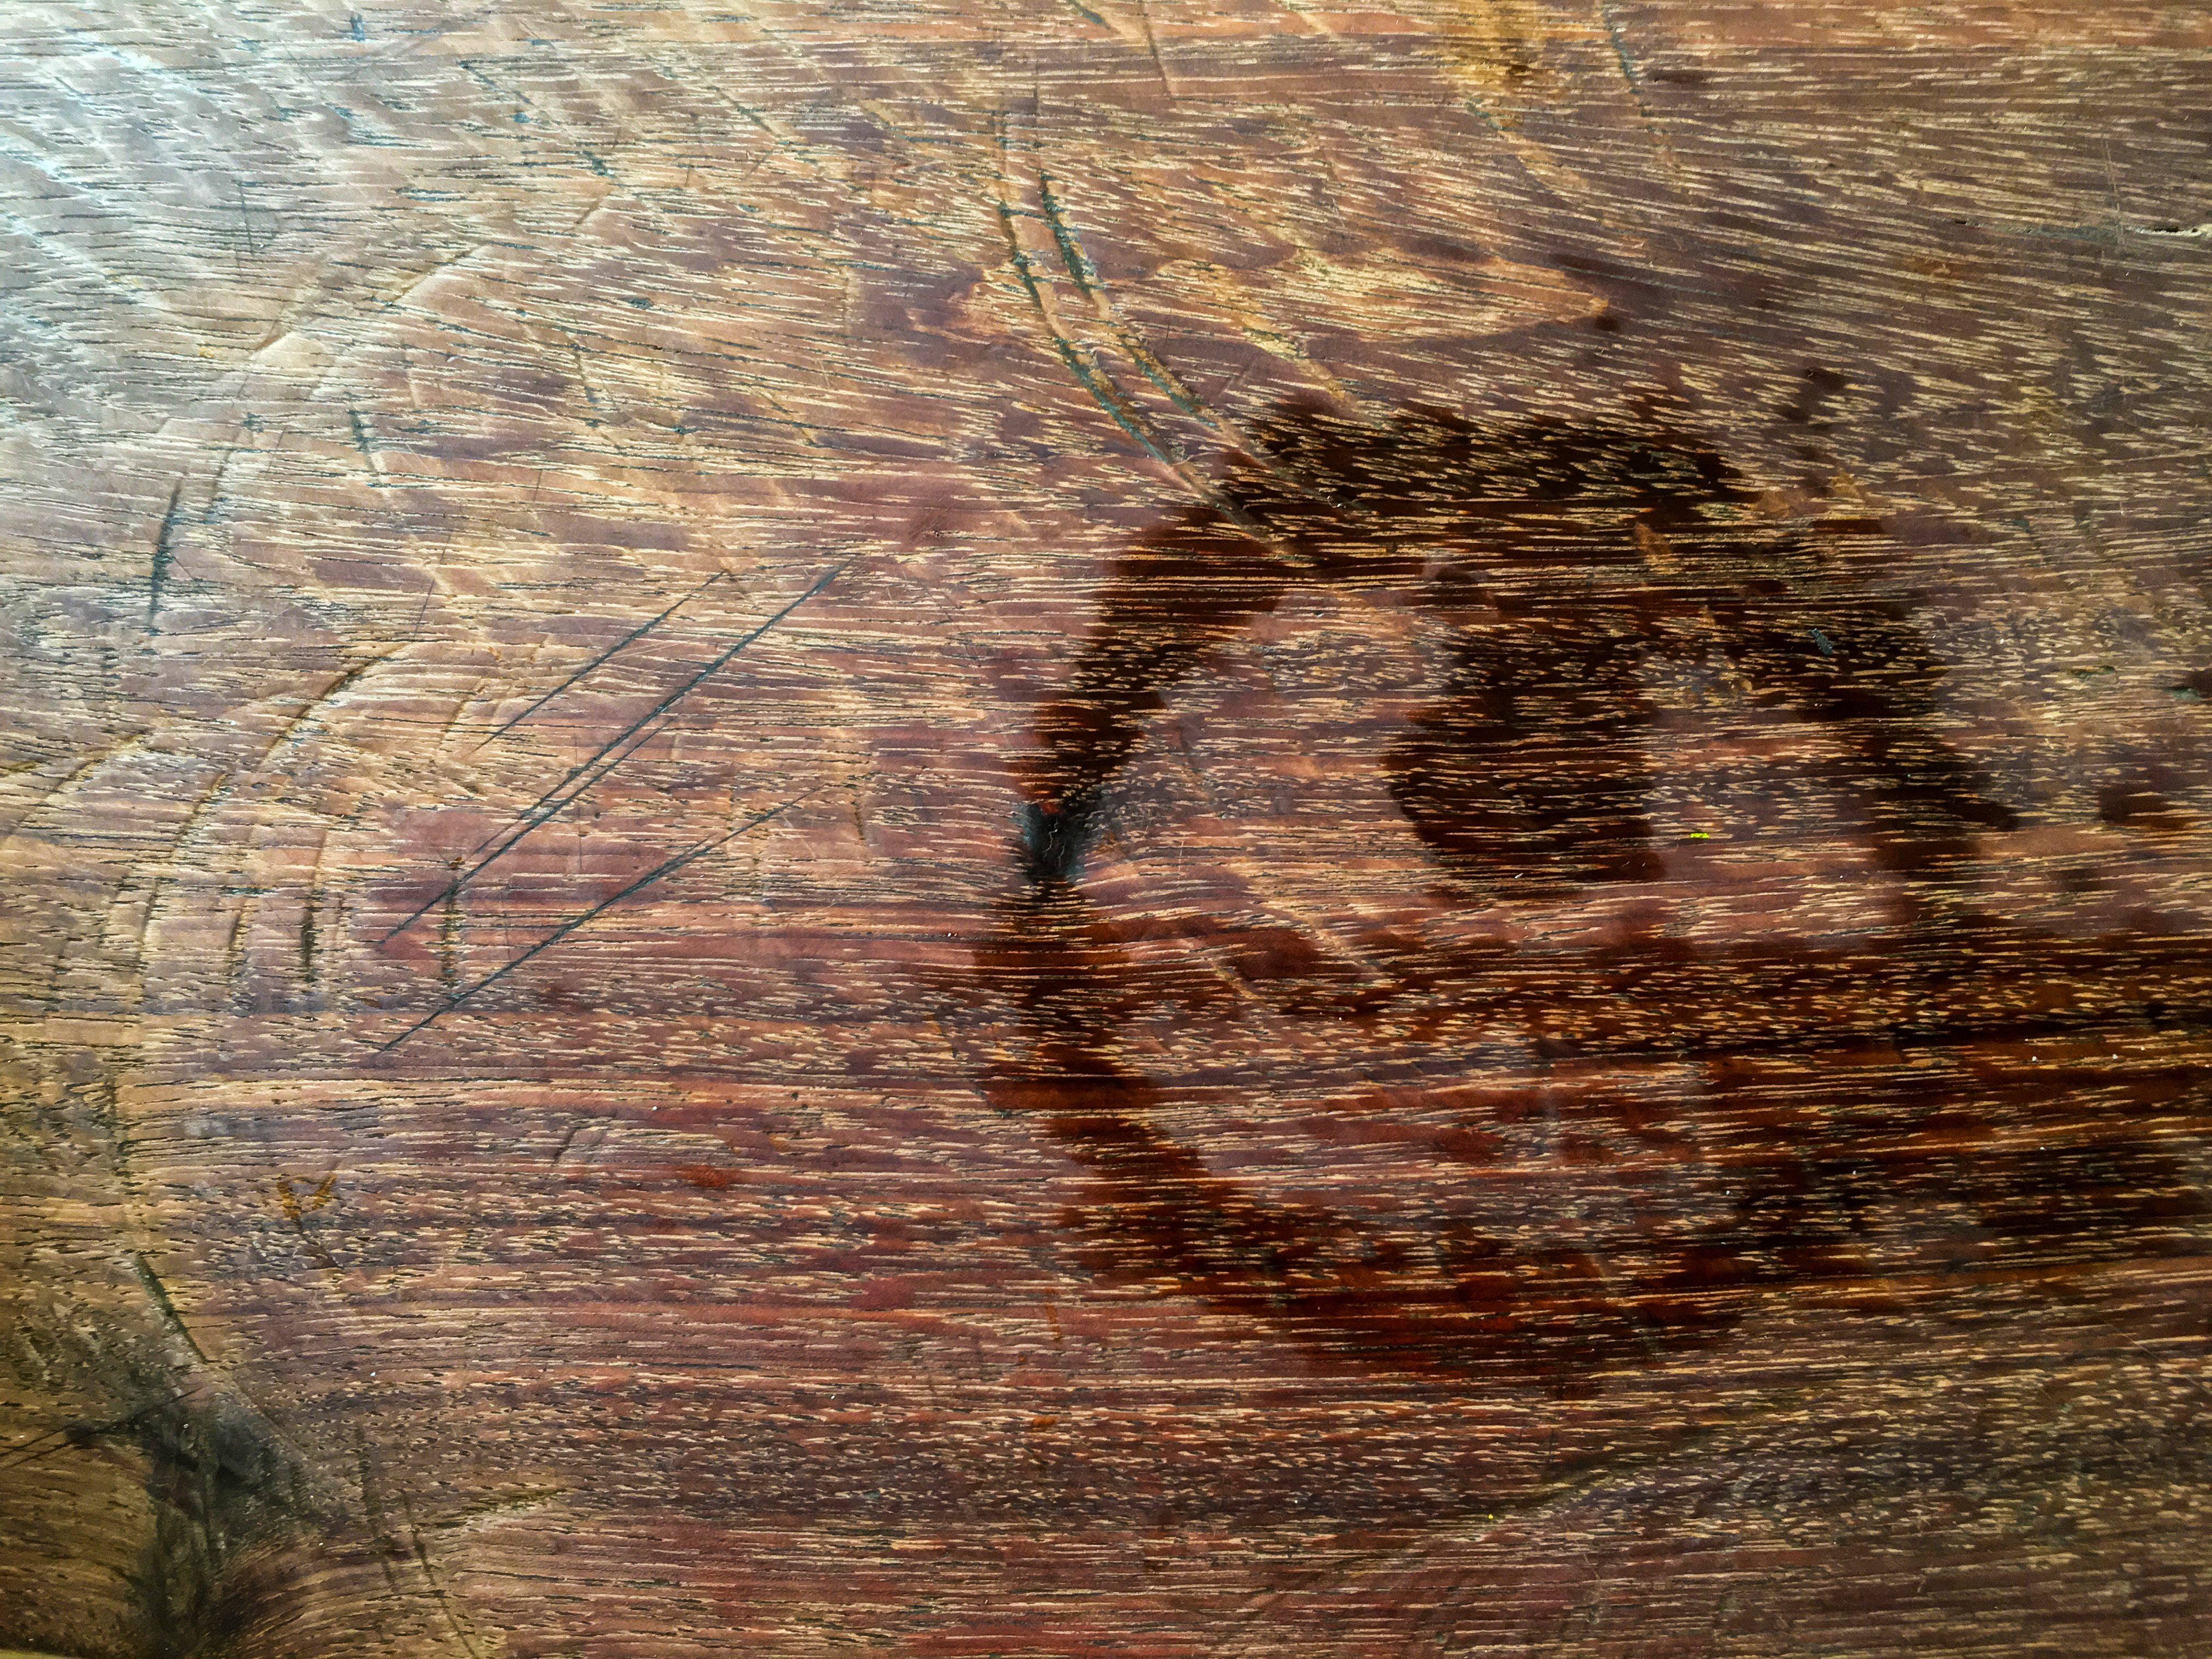 Trace water on wood, Abstract background